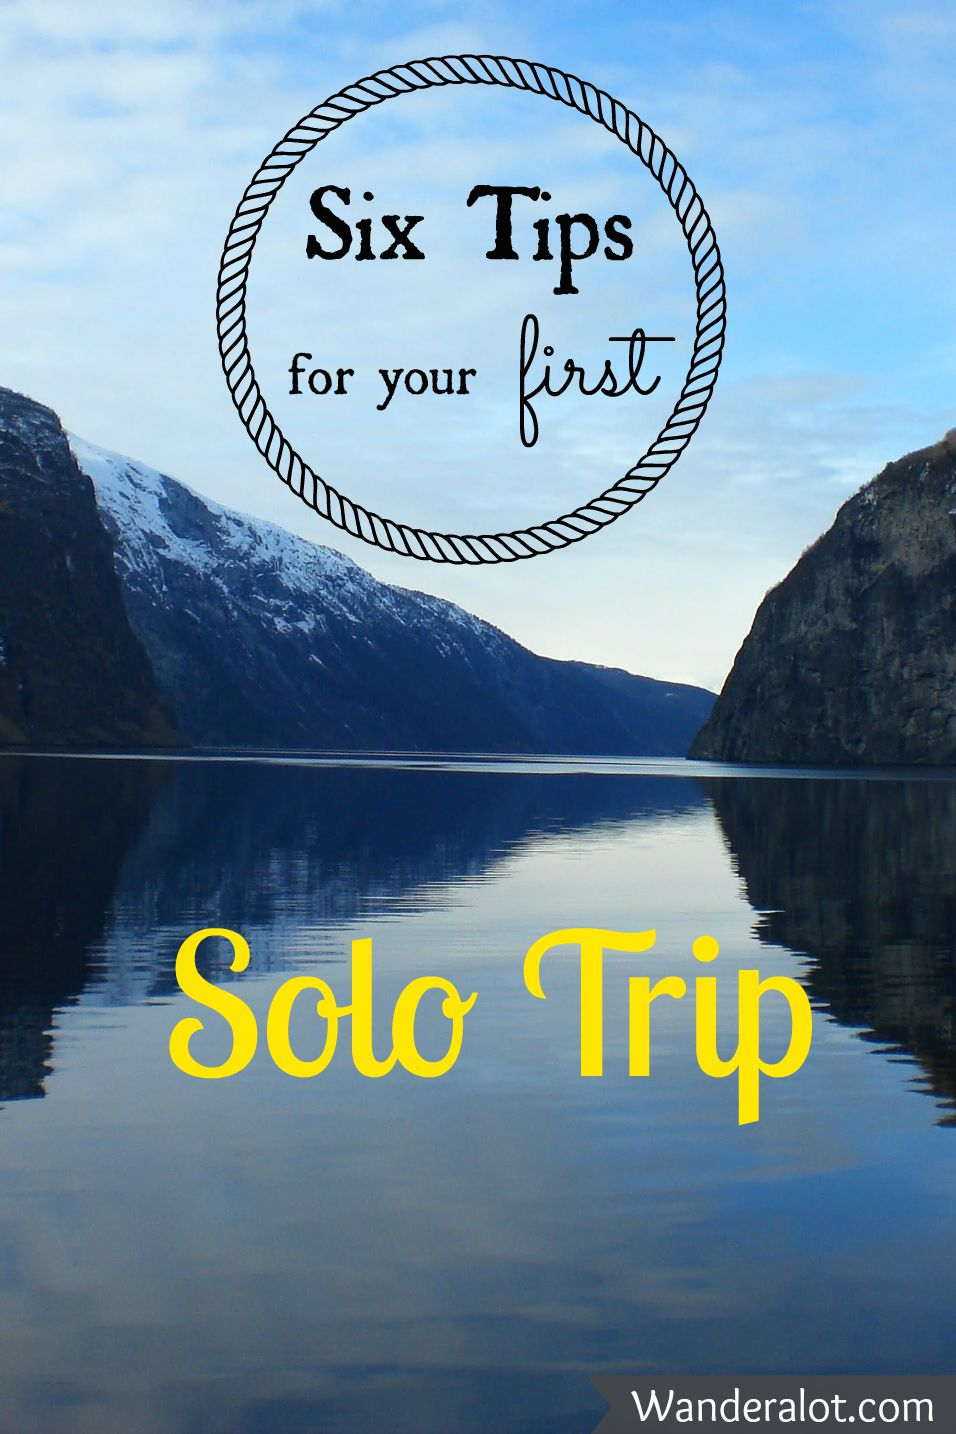 Six Tips for your first solo trip